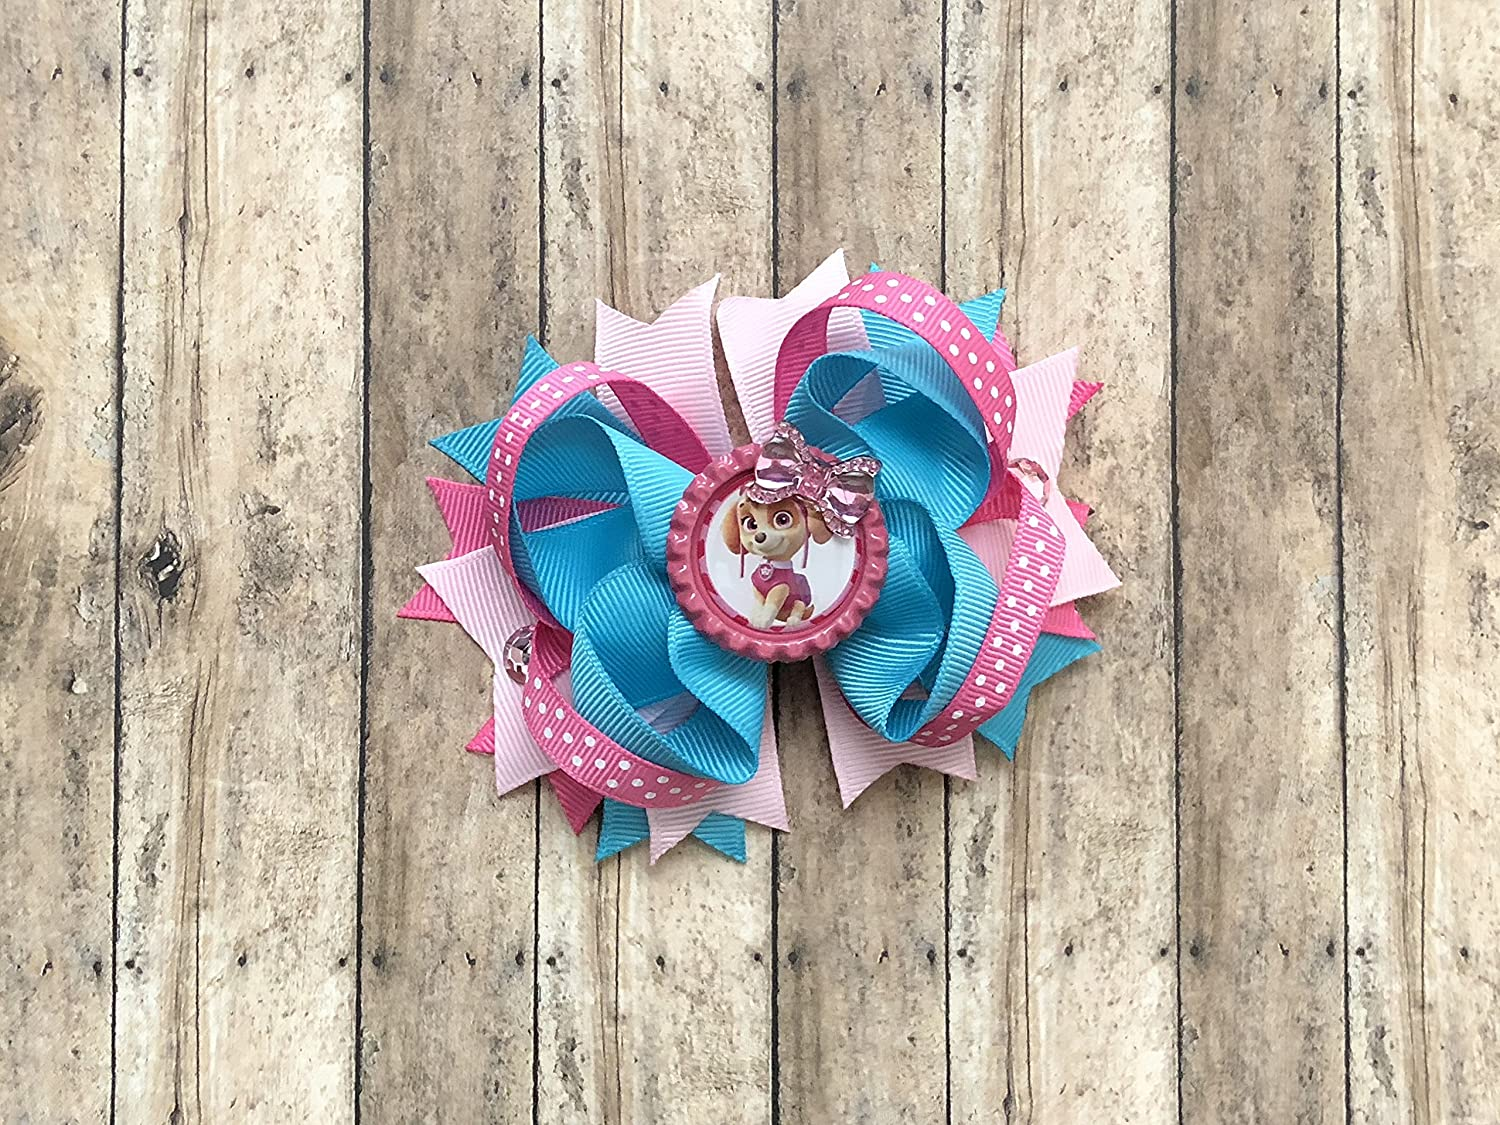 Paw Patrol Skye Inspired Bow by Inspired Bows